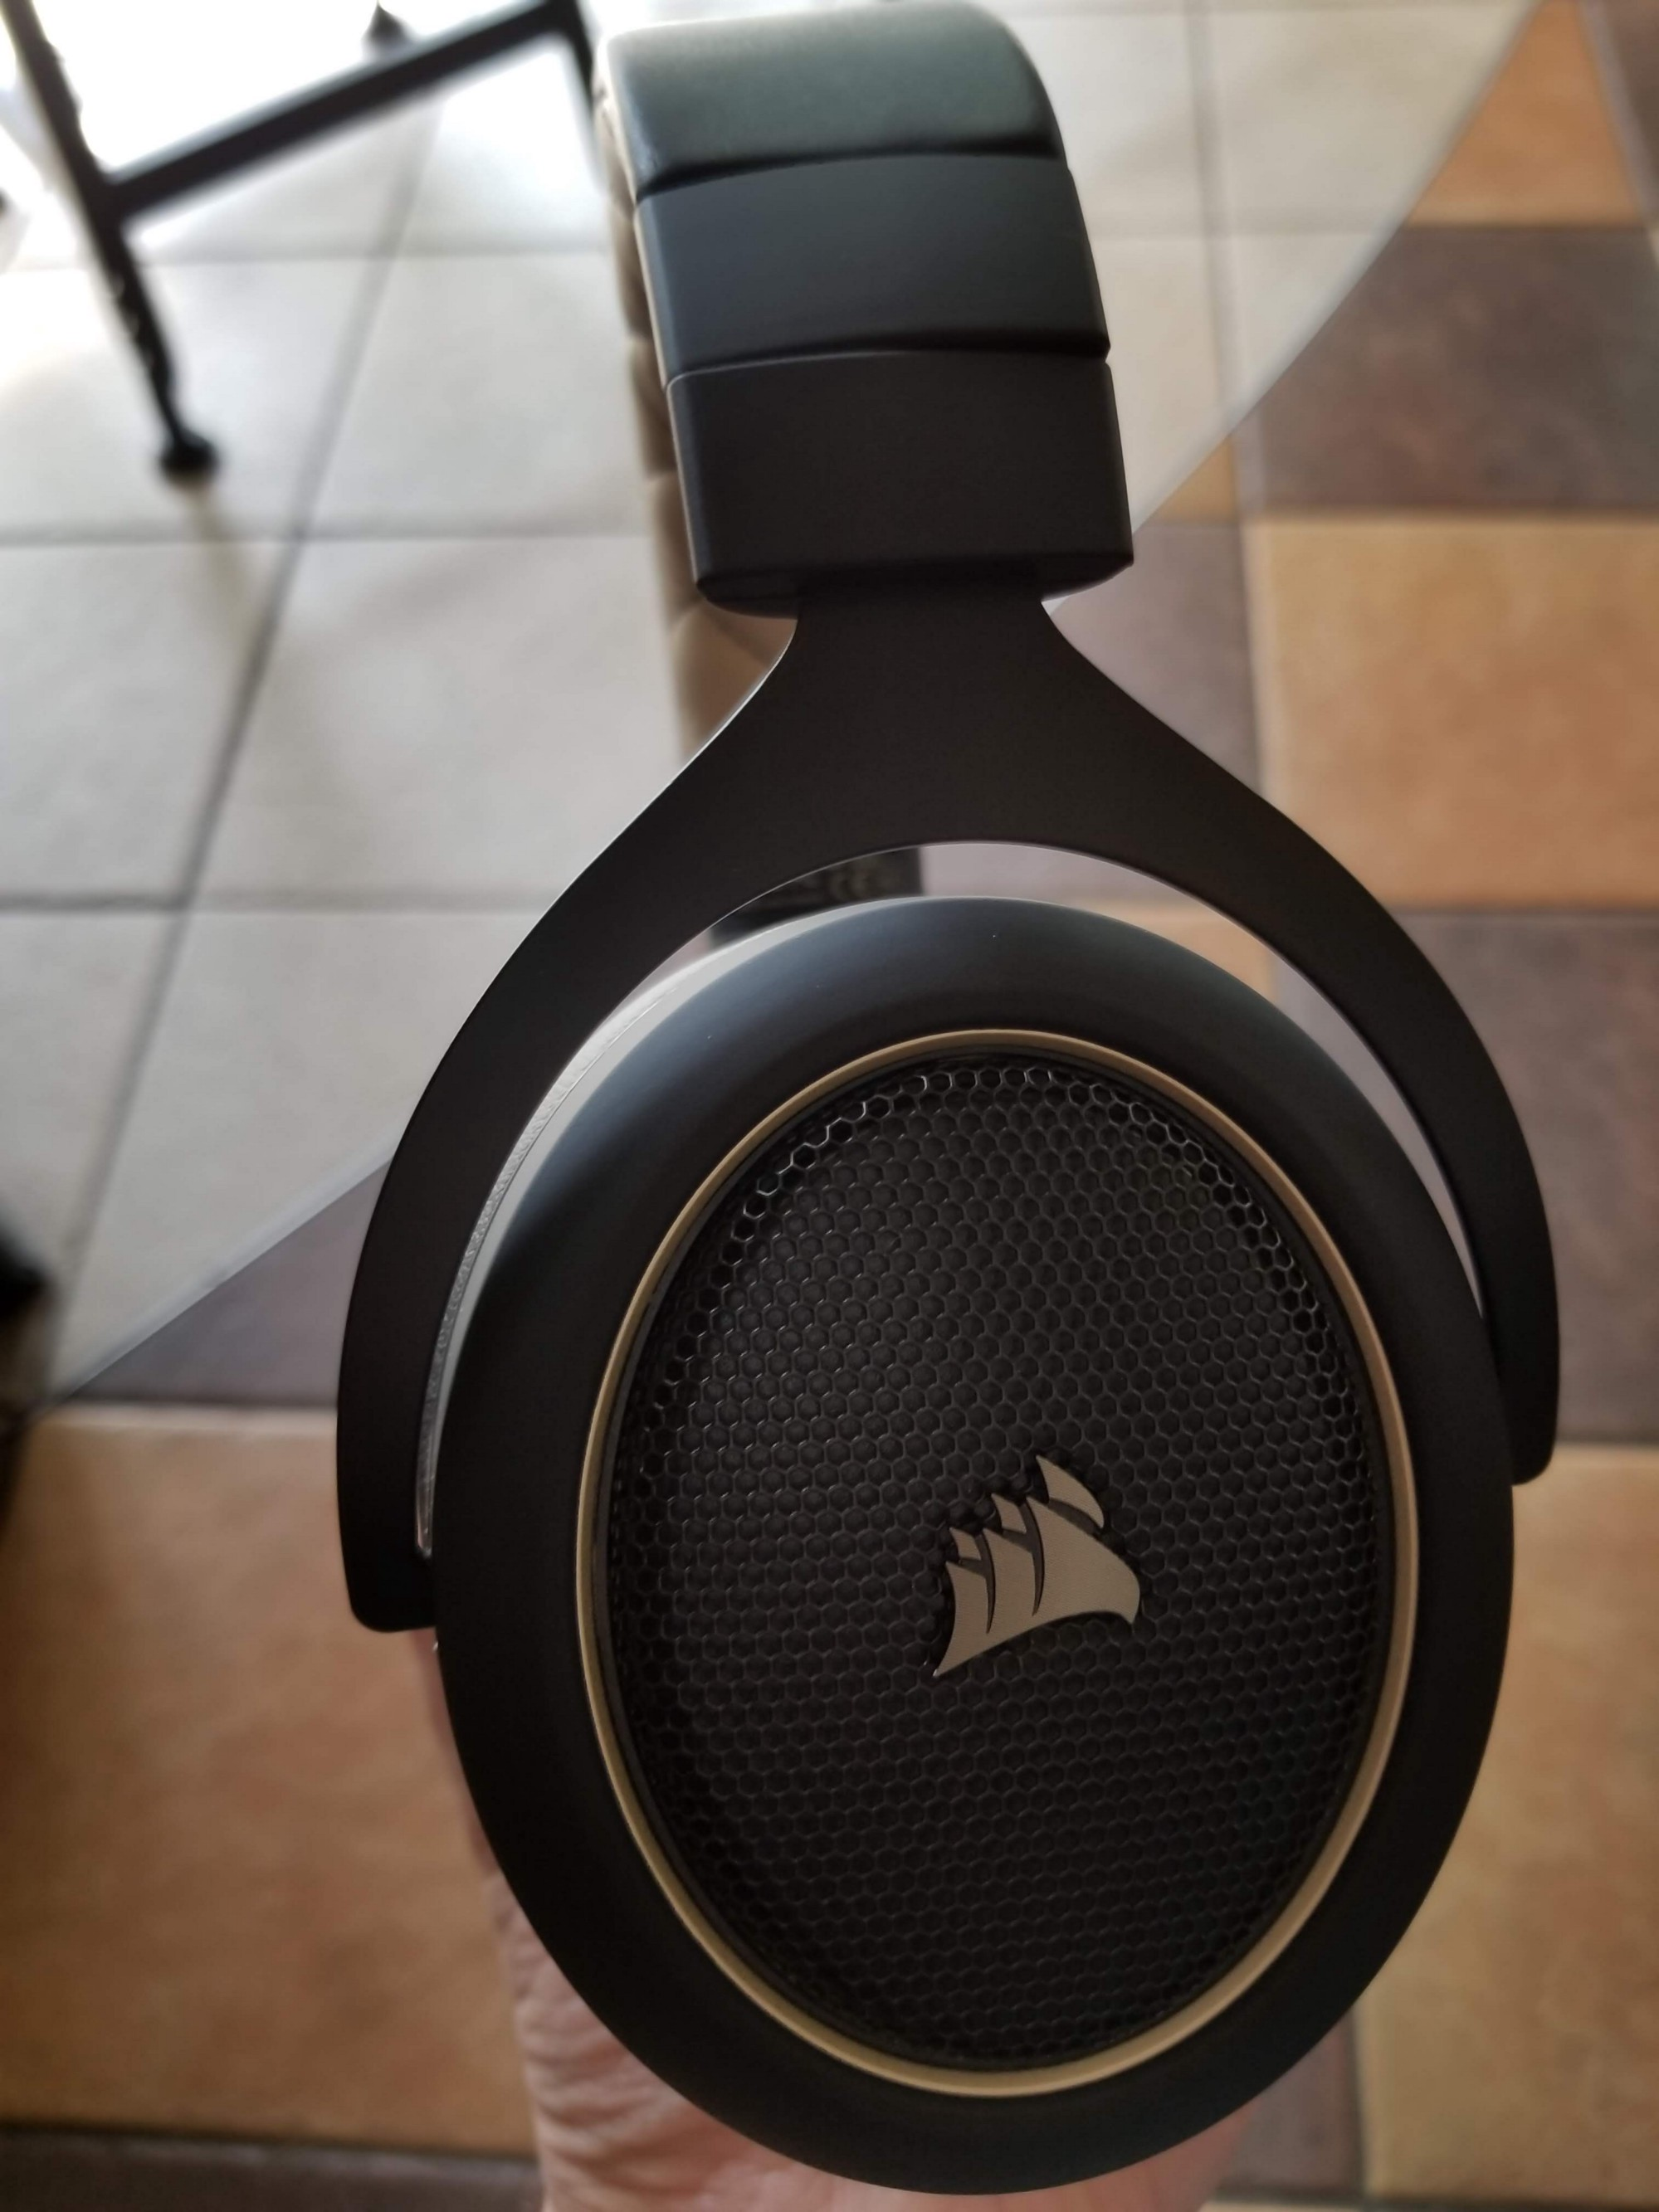 Corsair Hs70 Wireless Gaming Headset Review Alex Rowe Medium Sound Quality Two Output Ive Generally Enjoyed Corsairs Headsets In The Past Giving Positive Reviews To Both Hs50 And Void Pro